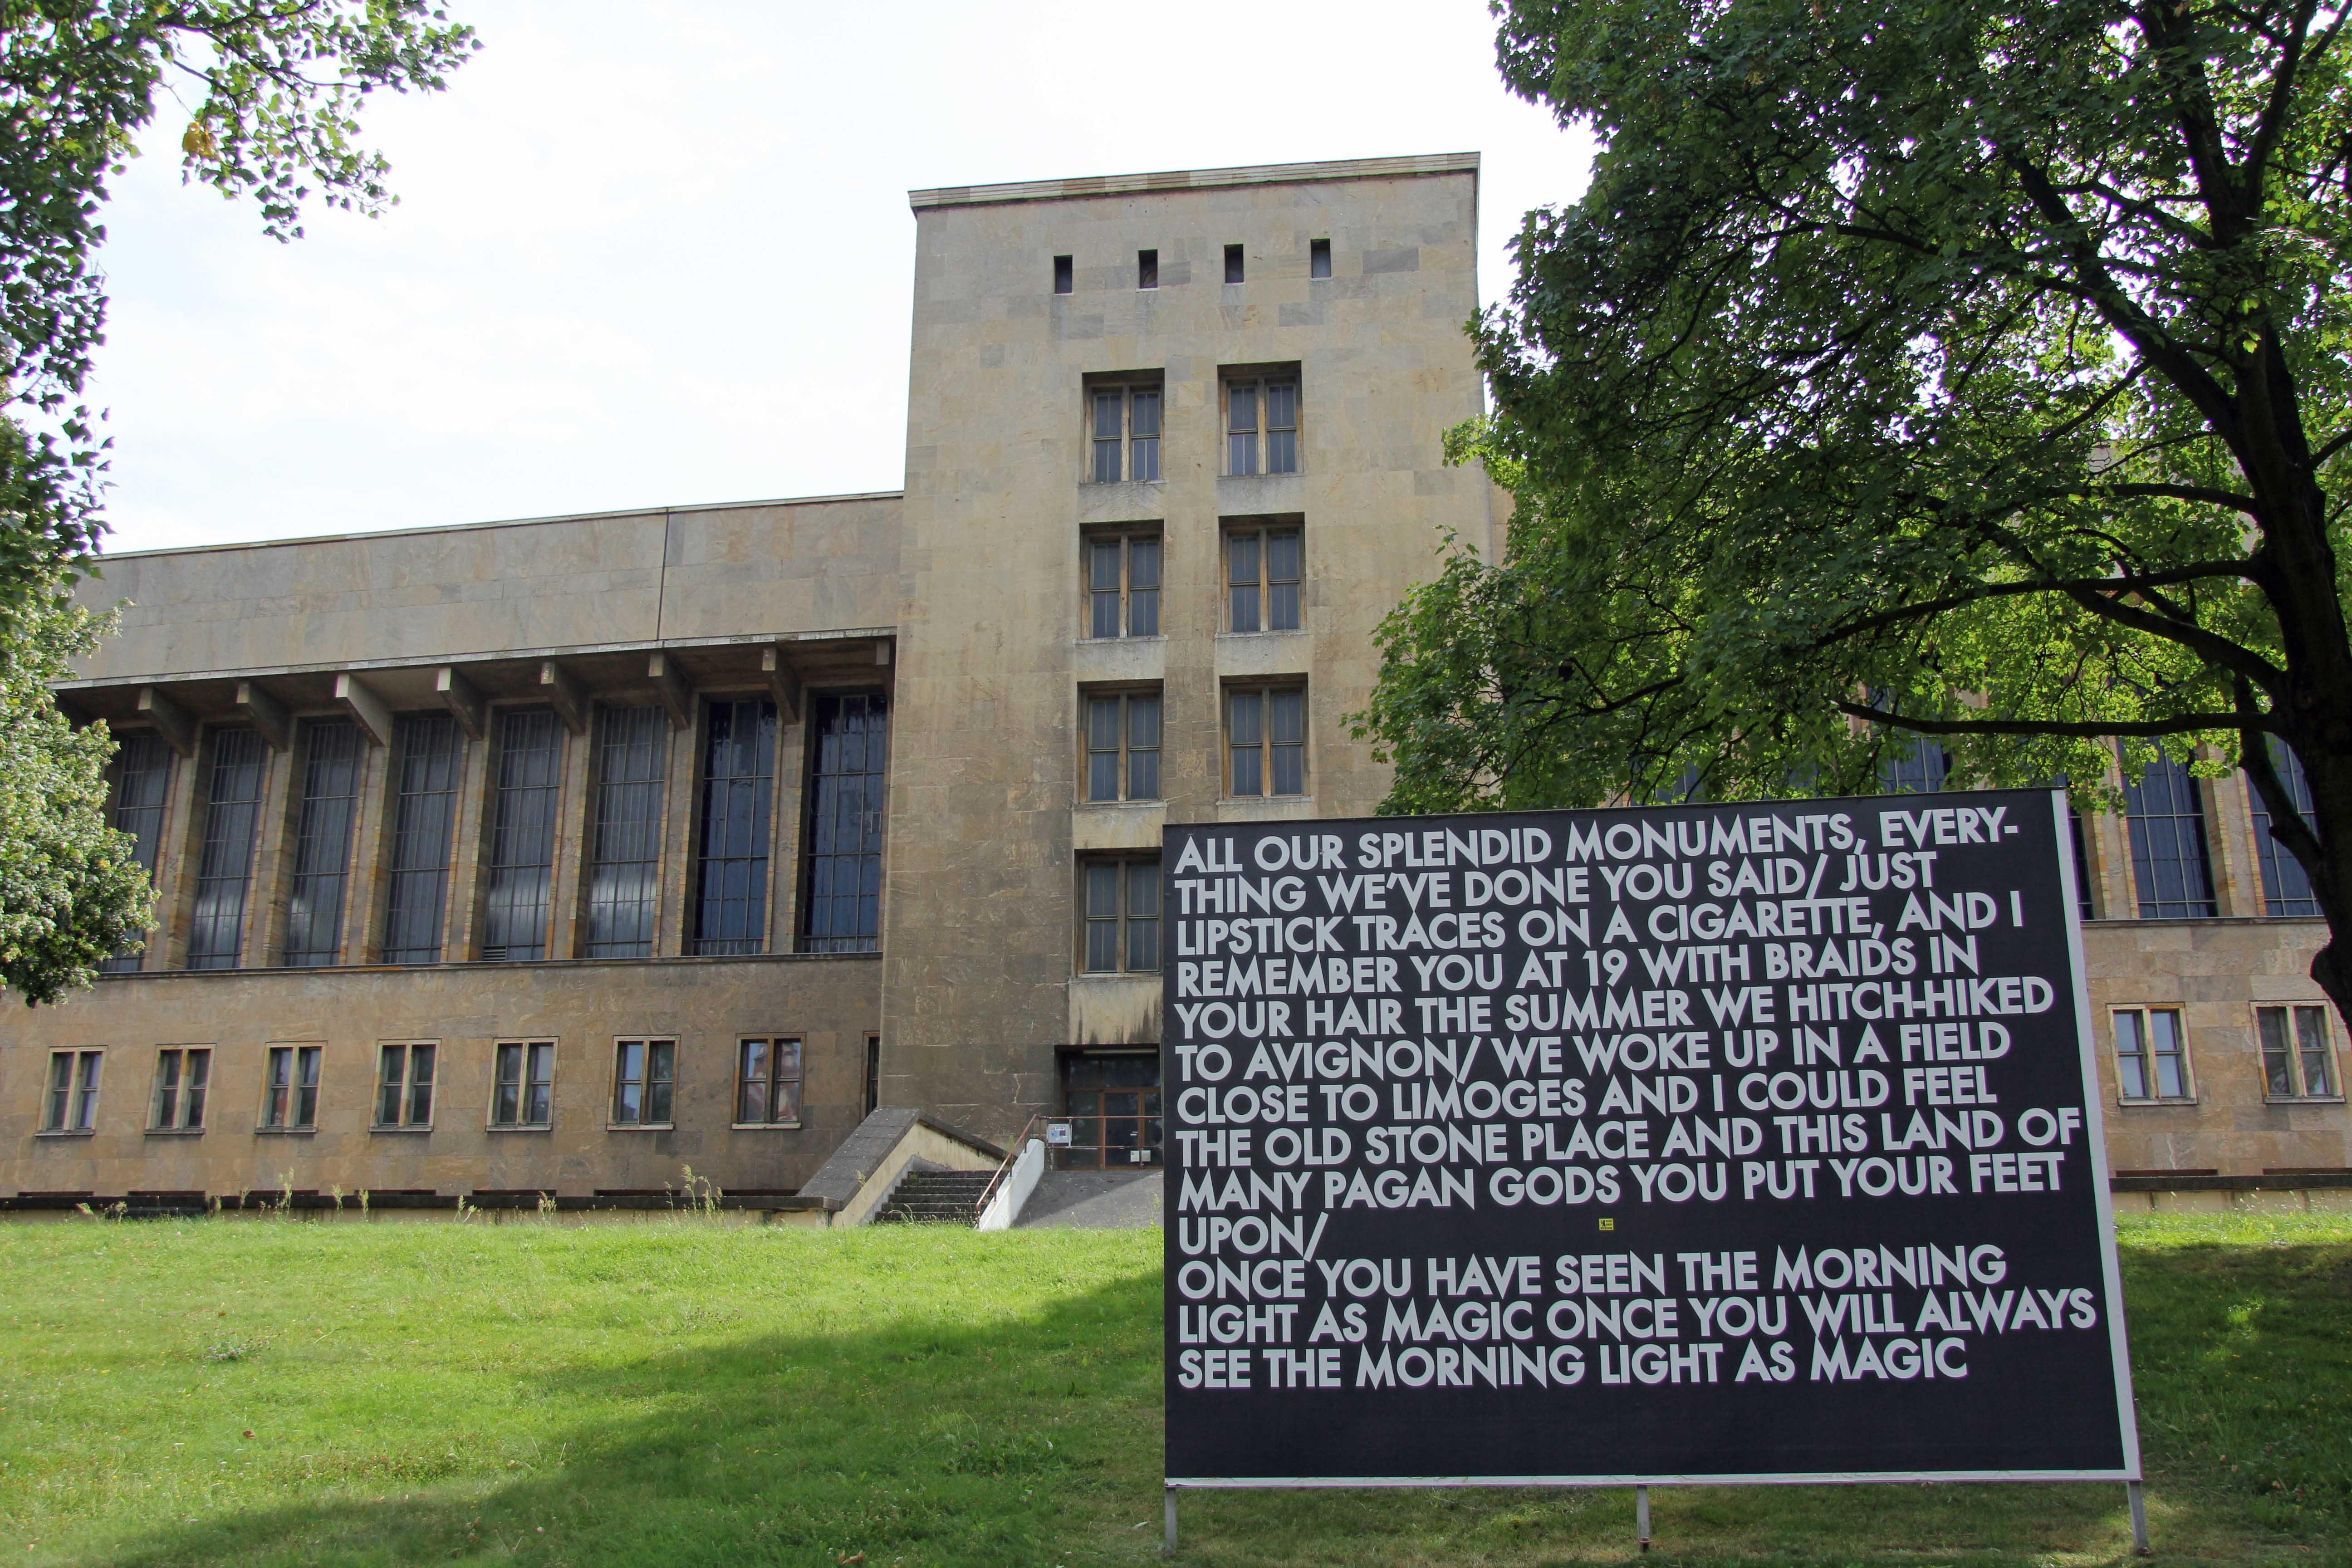 All our splendid monuments – a billboard installation by Robert Montgomery at the former Tempelhof Airport in Berlin